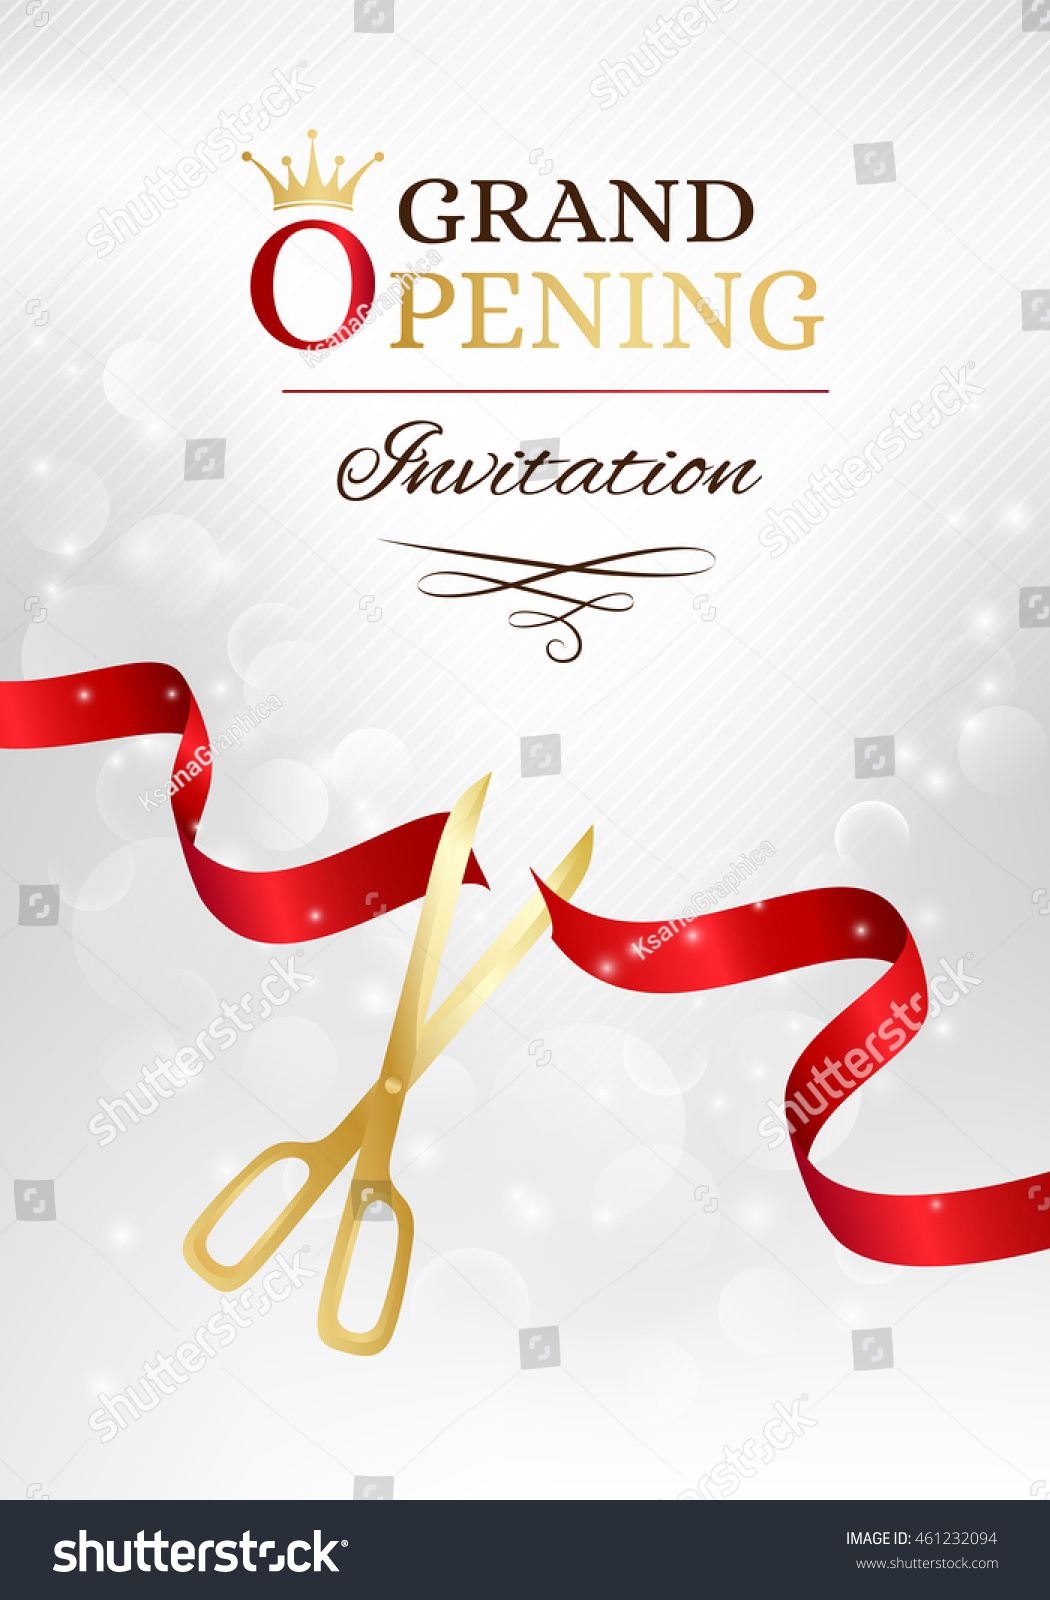 Grand Opening Invitation Card Cut Red Lager-vektor ...